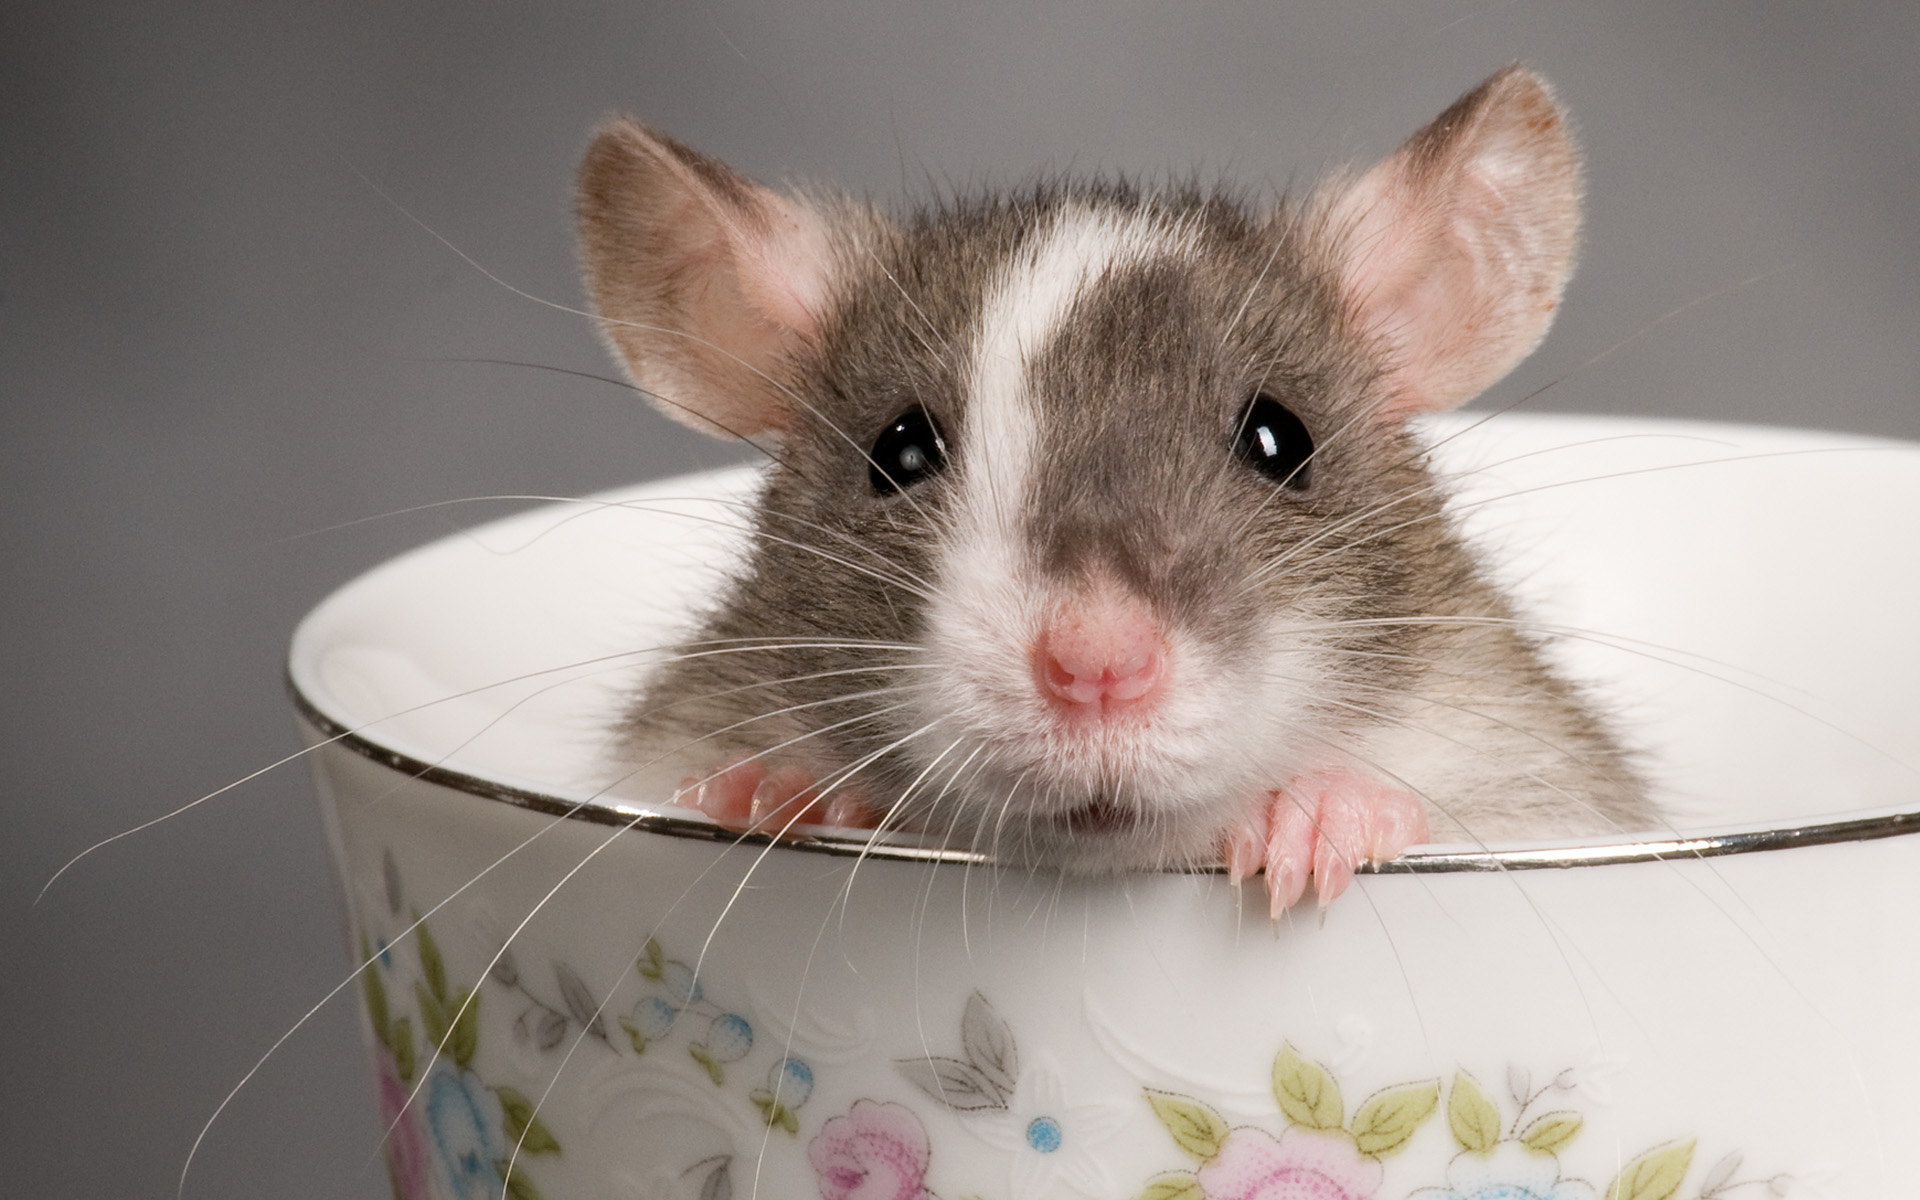 rat-teacup-animal-cute-rodent_427270